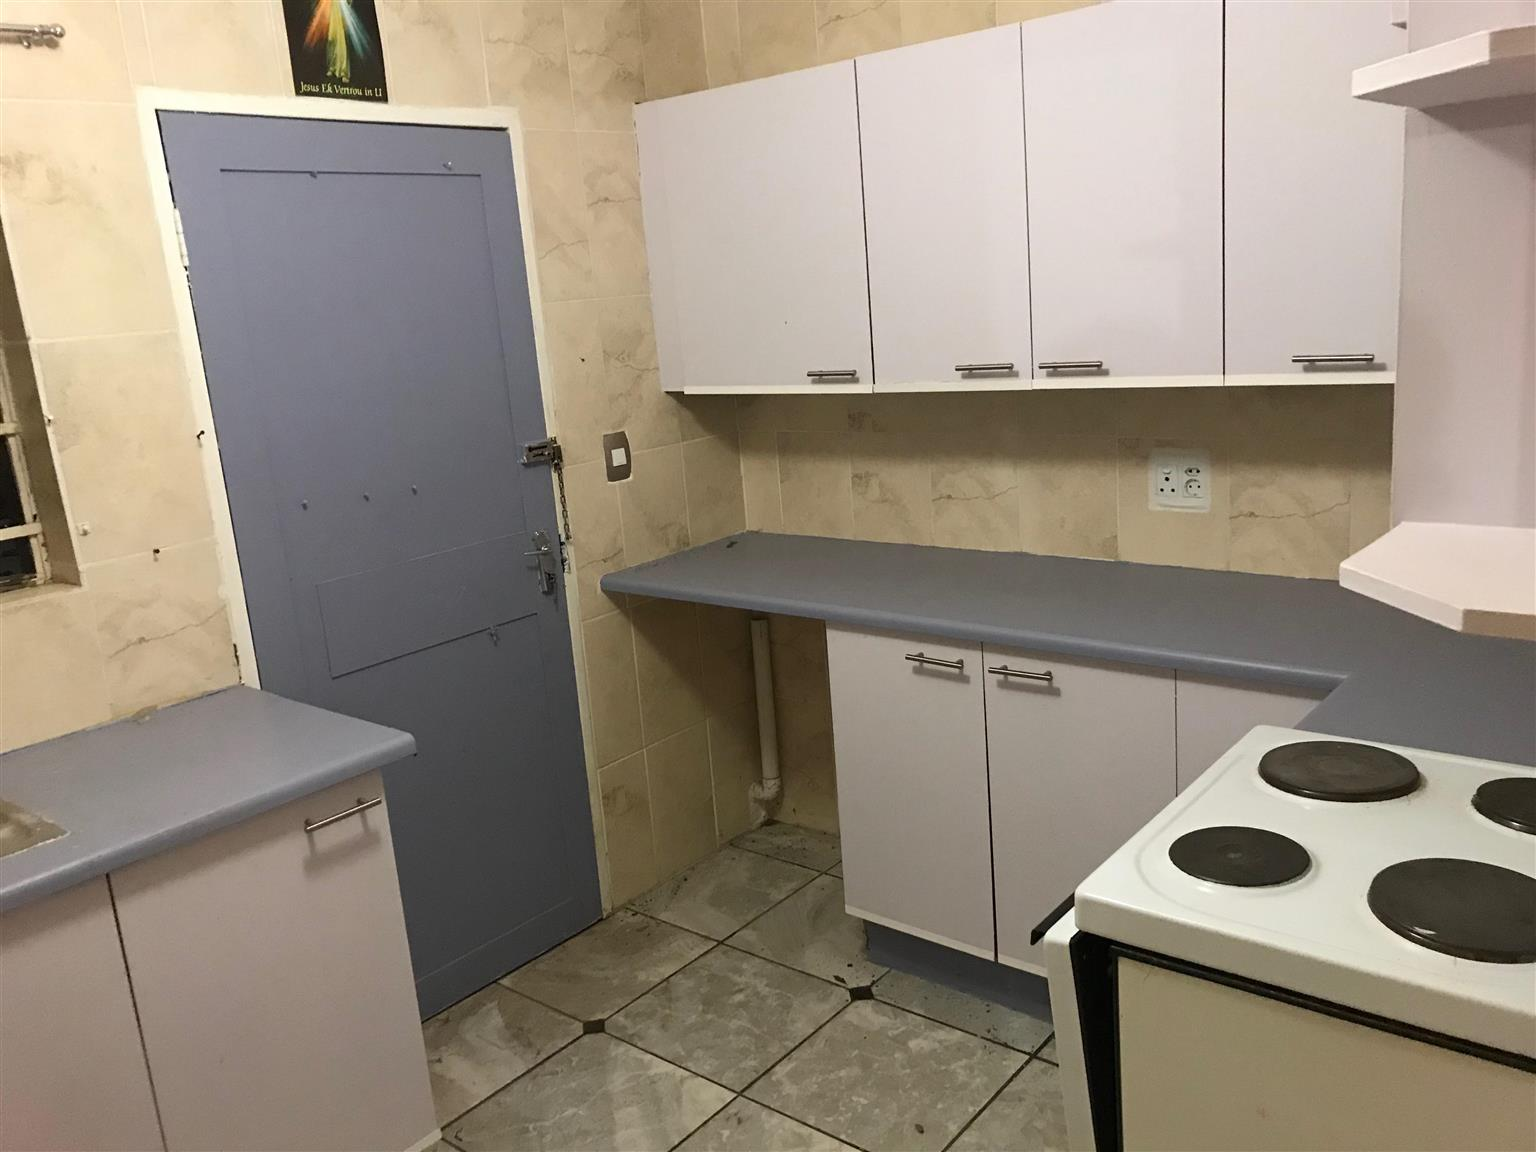 A room to rent for R2950, will be available 1st Jan 2018, 5 min drive to four-ways and 4 min drive to North-gate